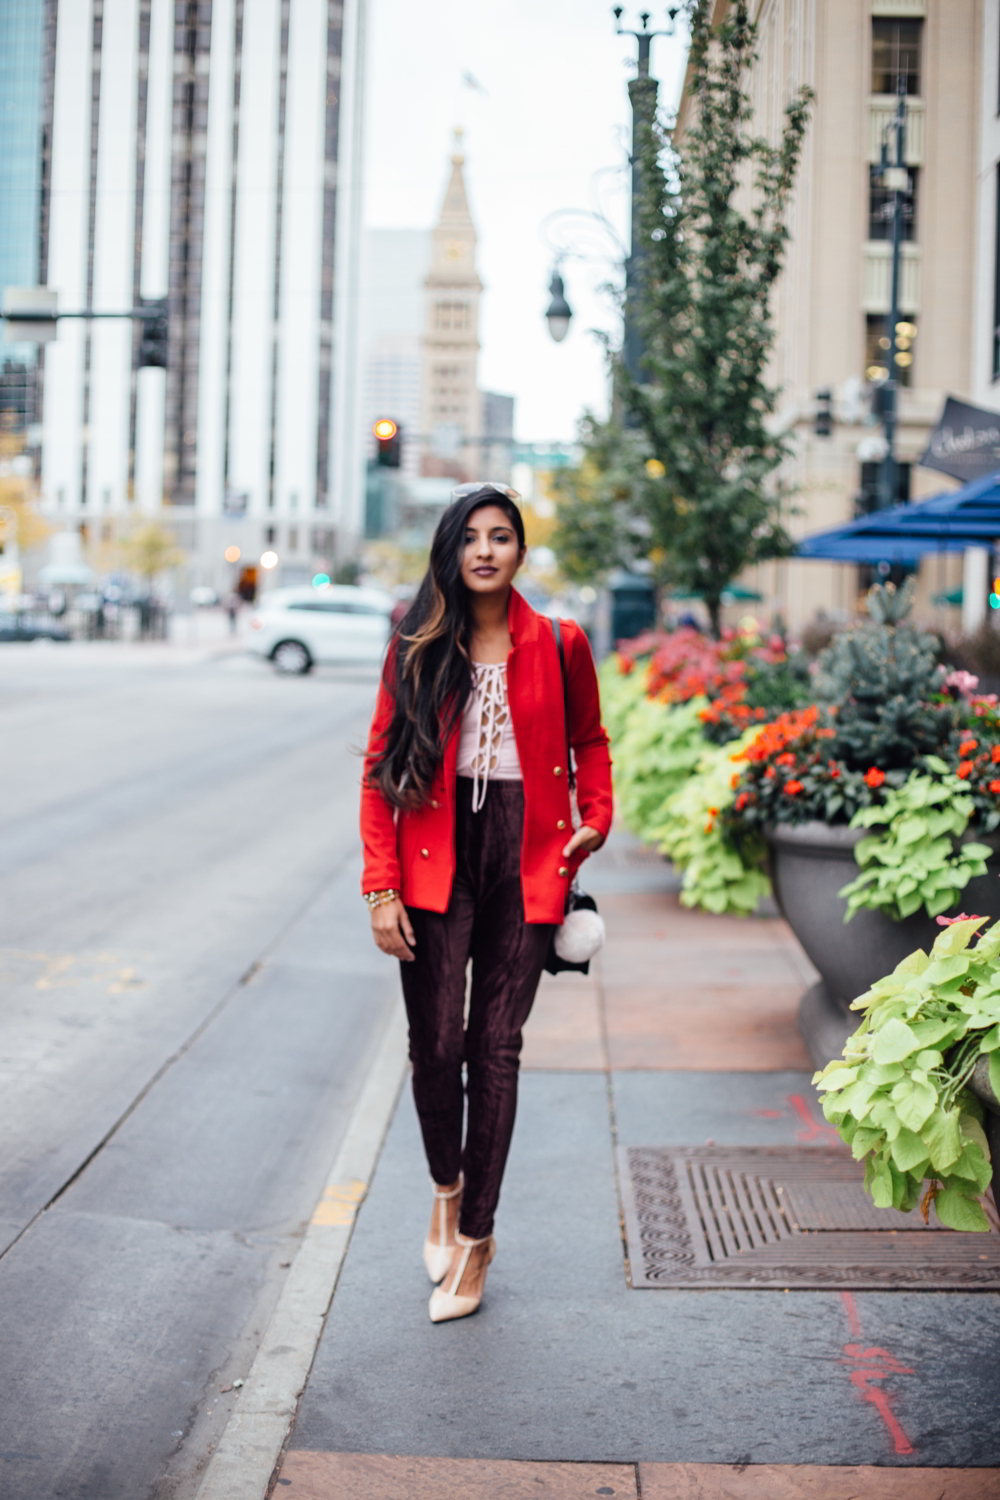 velvet-burgundy-pants-red-holiday-season-style-blogger-outfit 1